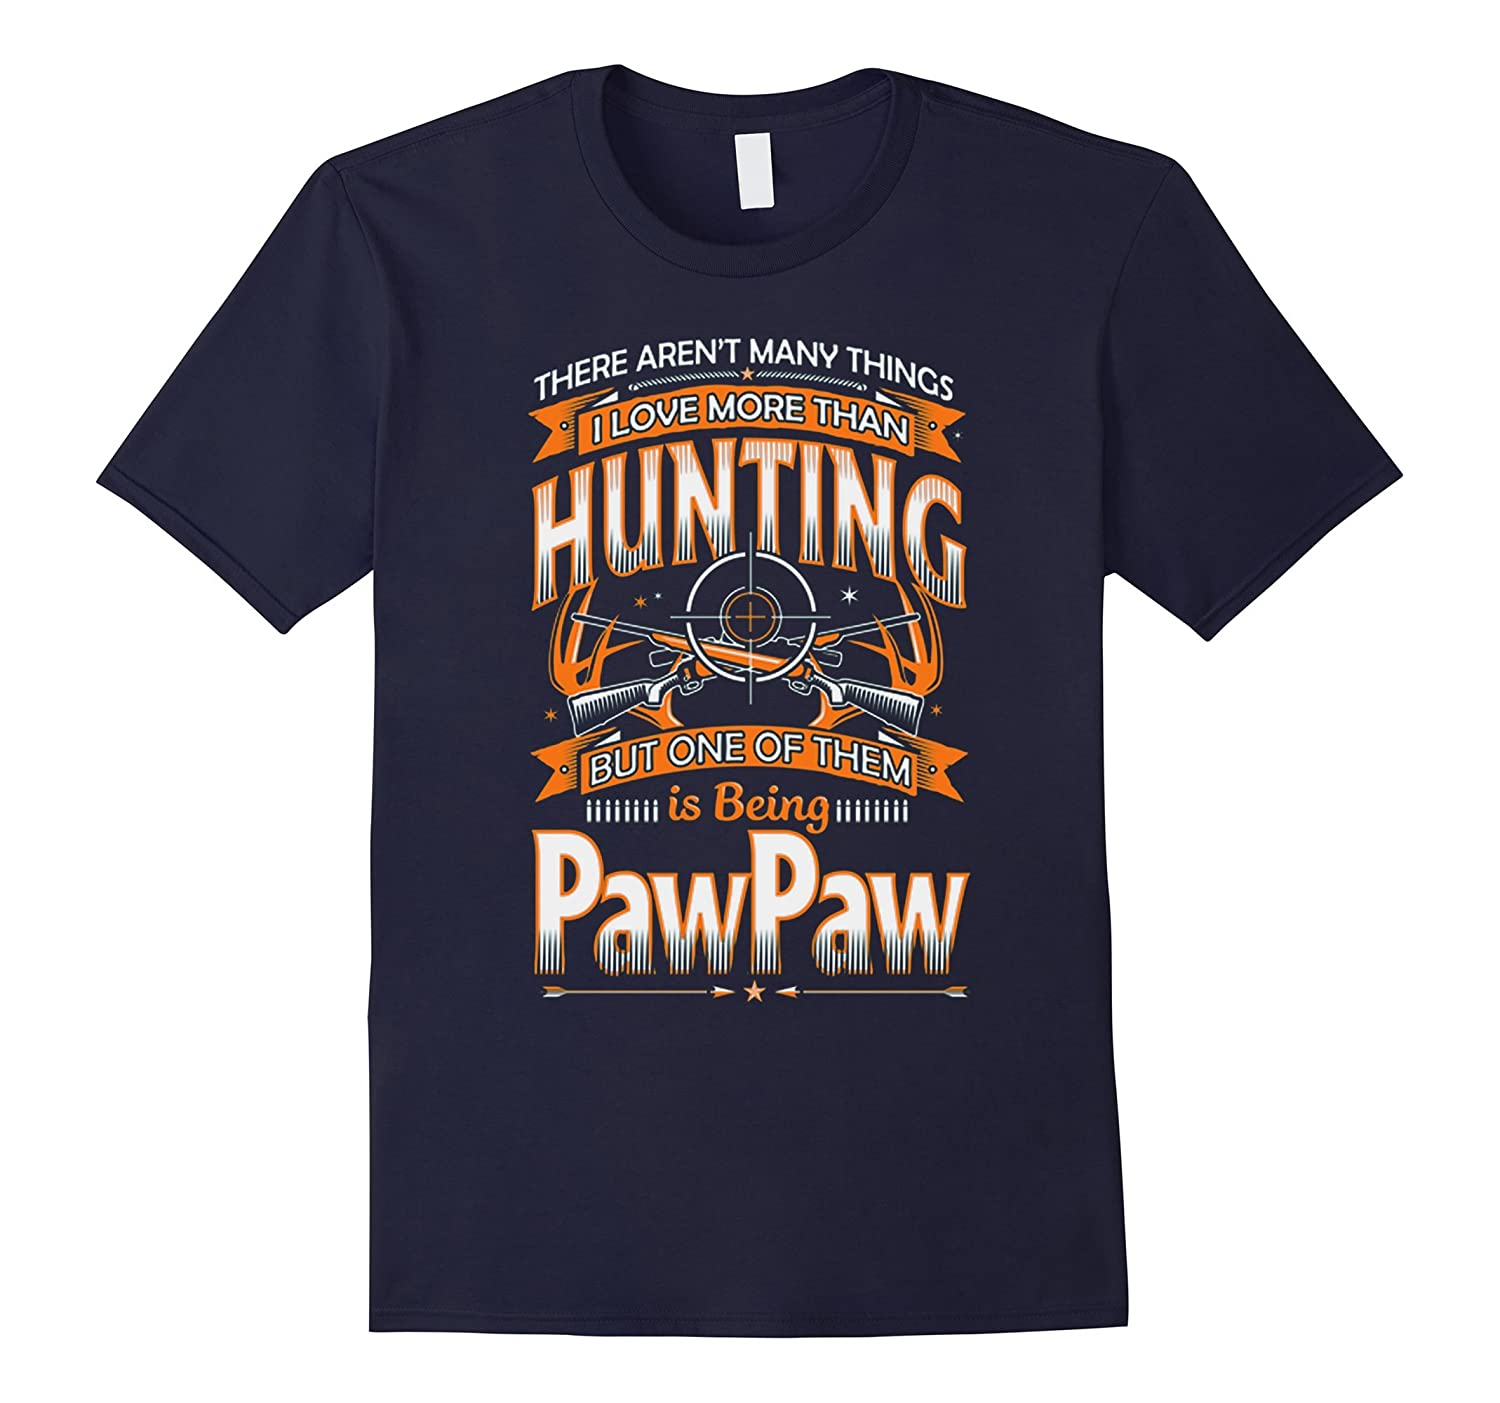 I Love HUNTING and Being PAWPAW t-shirt-Art